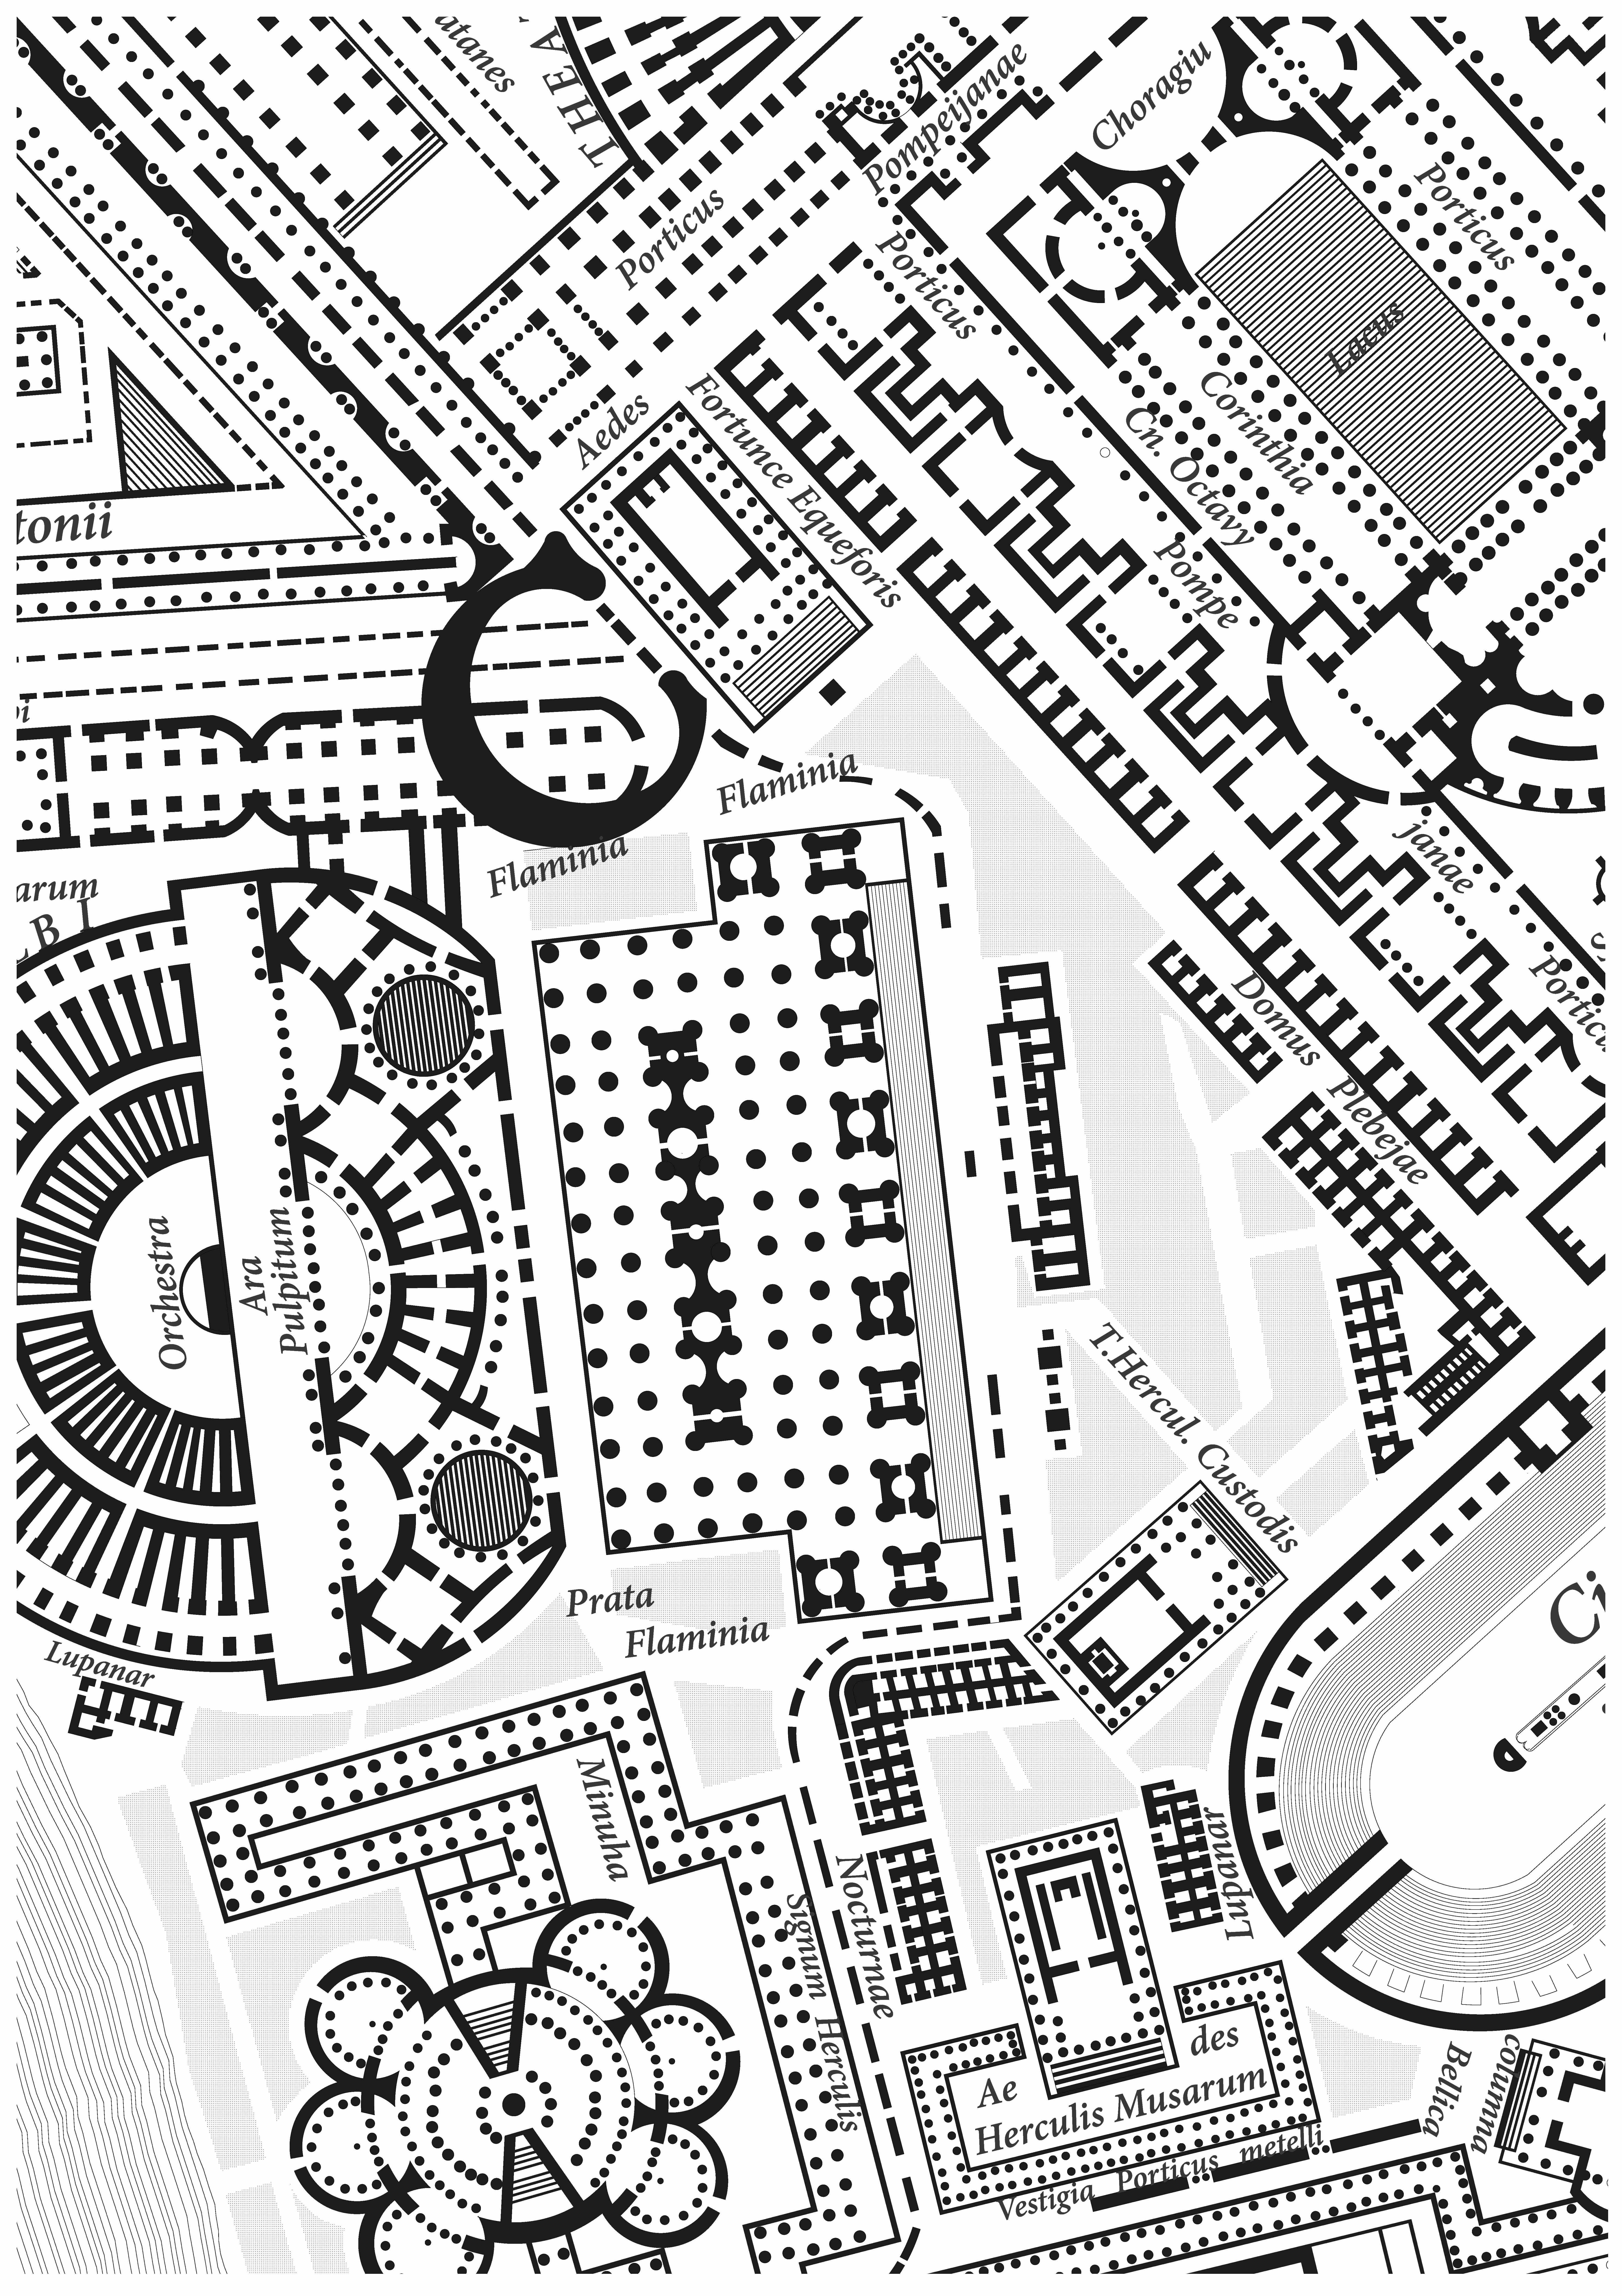 Cell city drawing at getdrawings free for personal use cell 7016x9933 eleven canonical city plans and a note on the conceptual practice ccuart Images